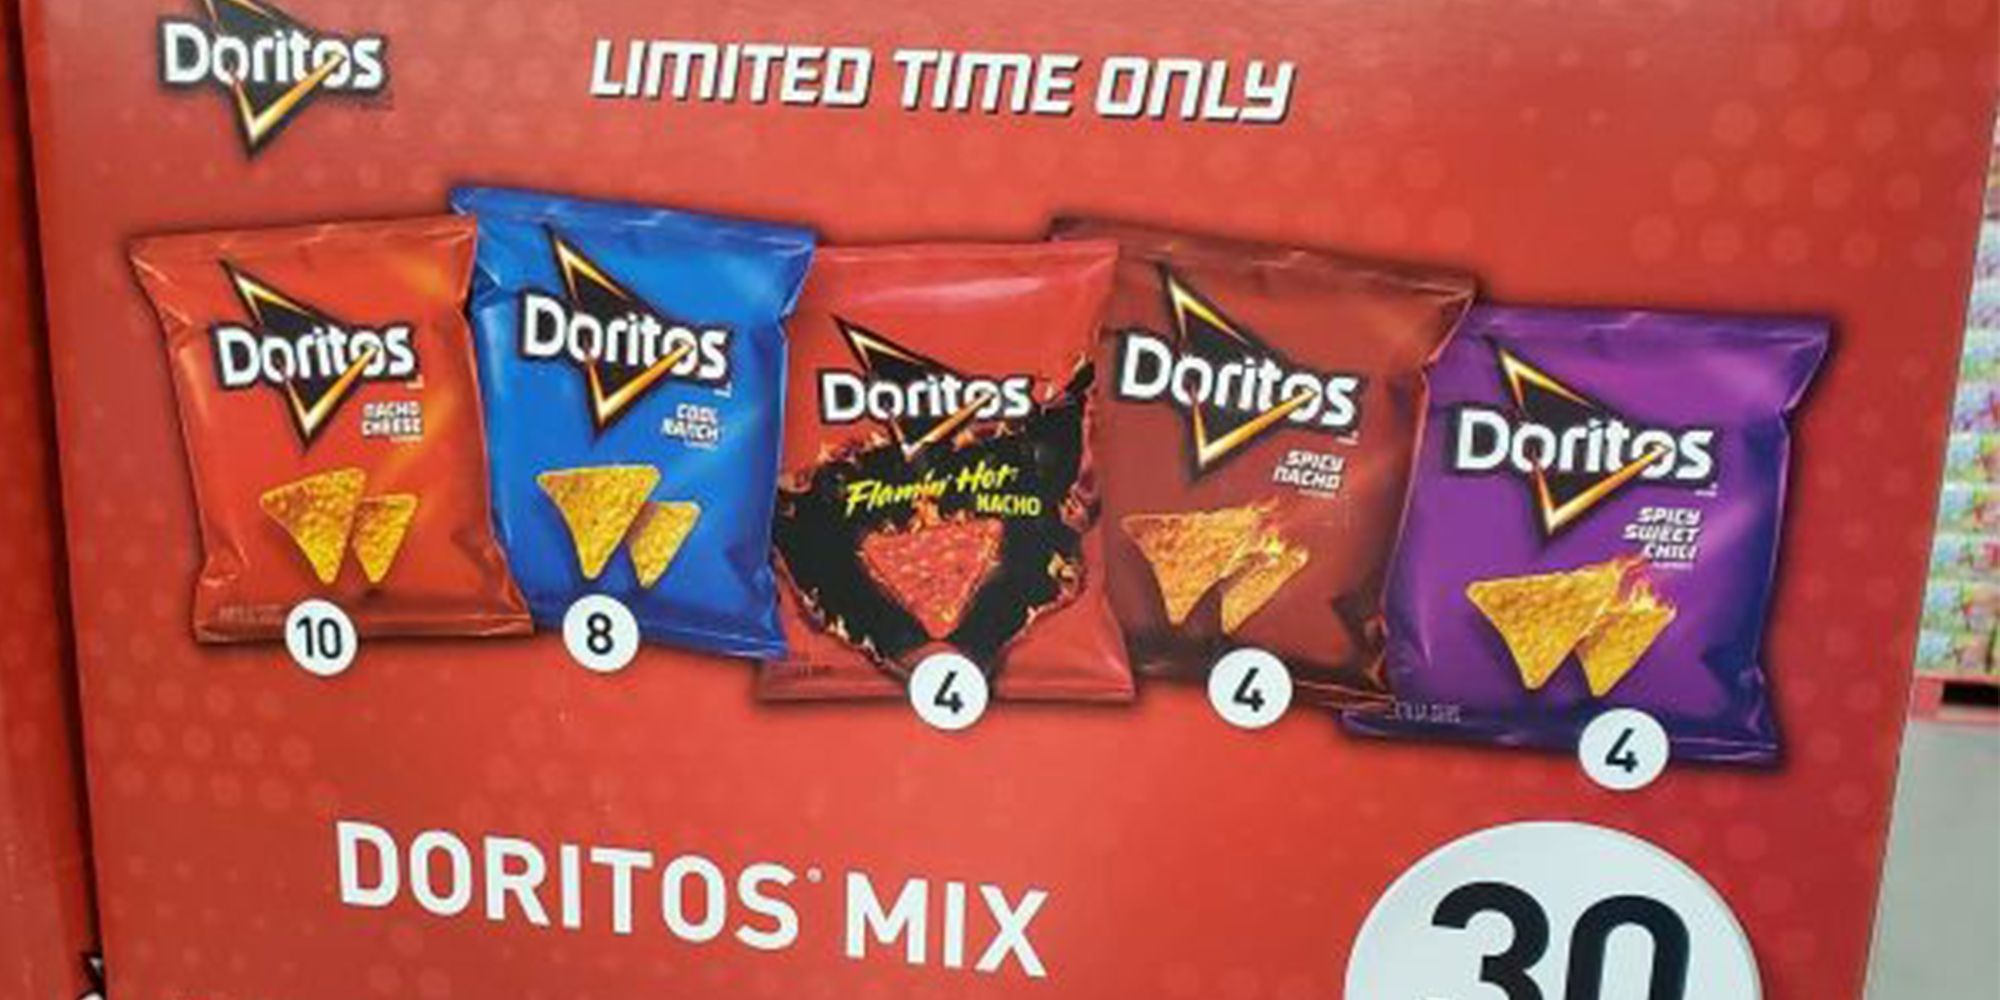 Sam's Club Is Selling A Limited-Edition Box Of Doritos With 5 Different Flavors